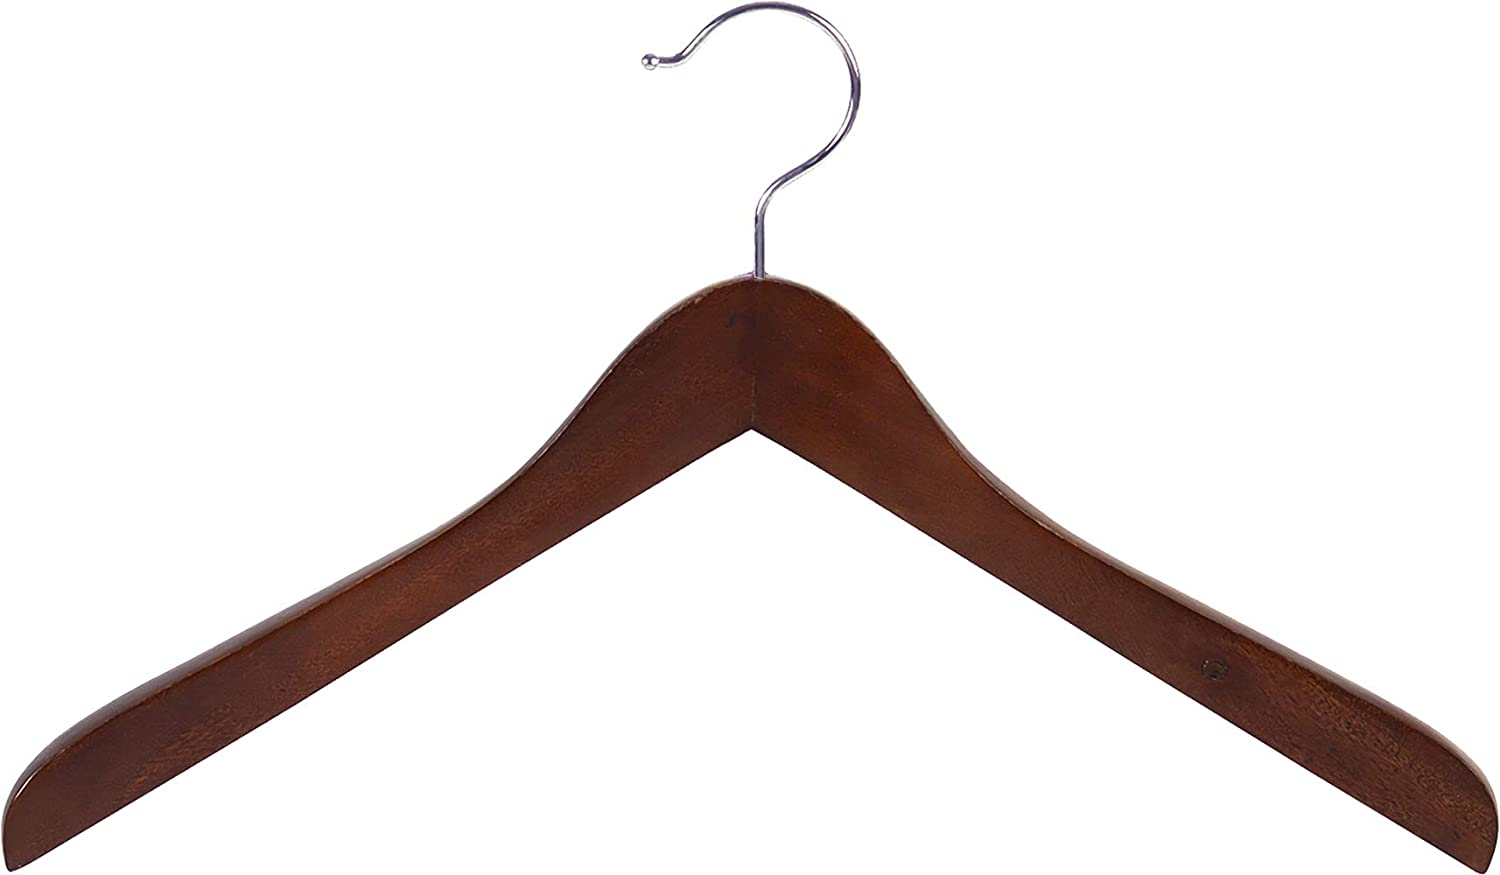 Set of 12 by The Great American Hanger Company Thick Curved Coat Hangers with Chrome Swivel Hook for Jackets or Fine Shirts Concave Wooden Top Hanger with Walnut Finish